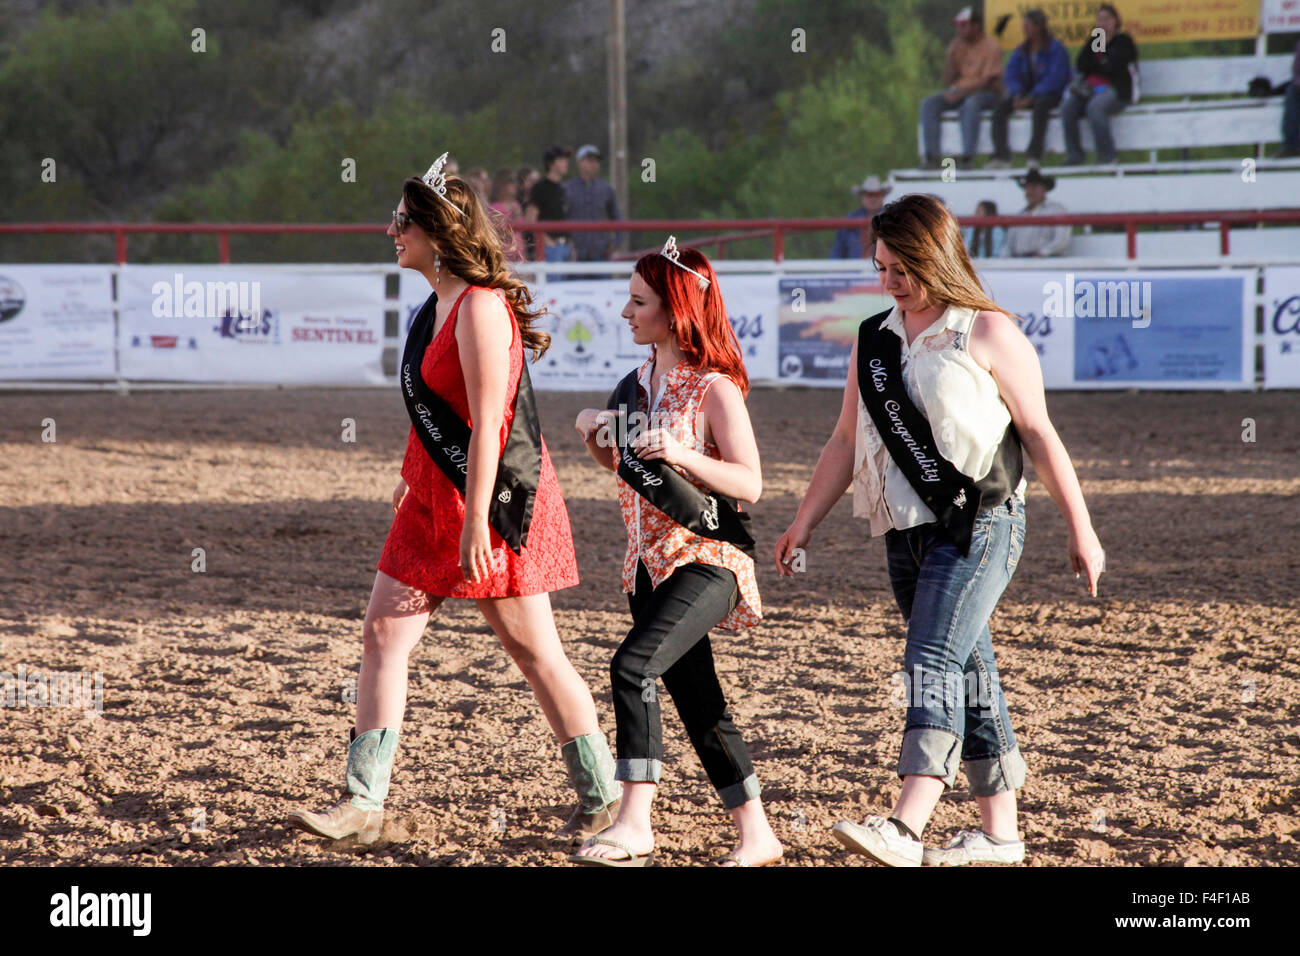 The rodeo princesses walk out to begin the rodeo, Truth or Consequences, New Mexico, USA. - Stock Image